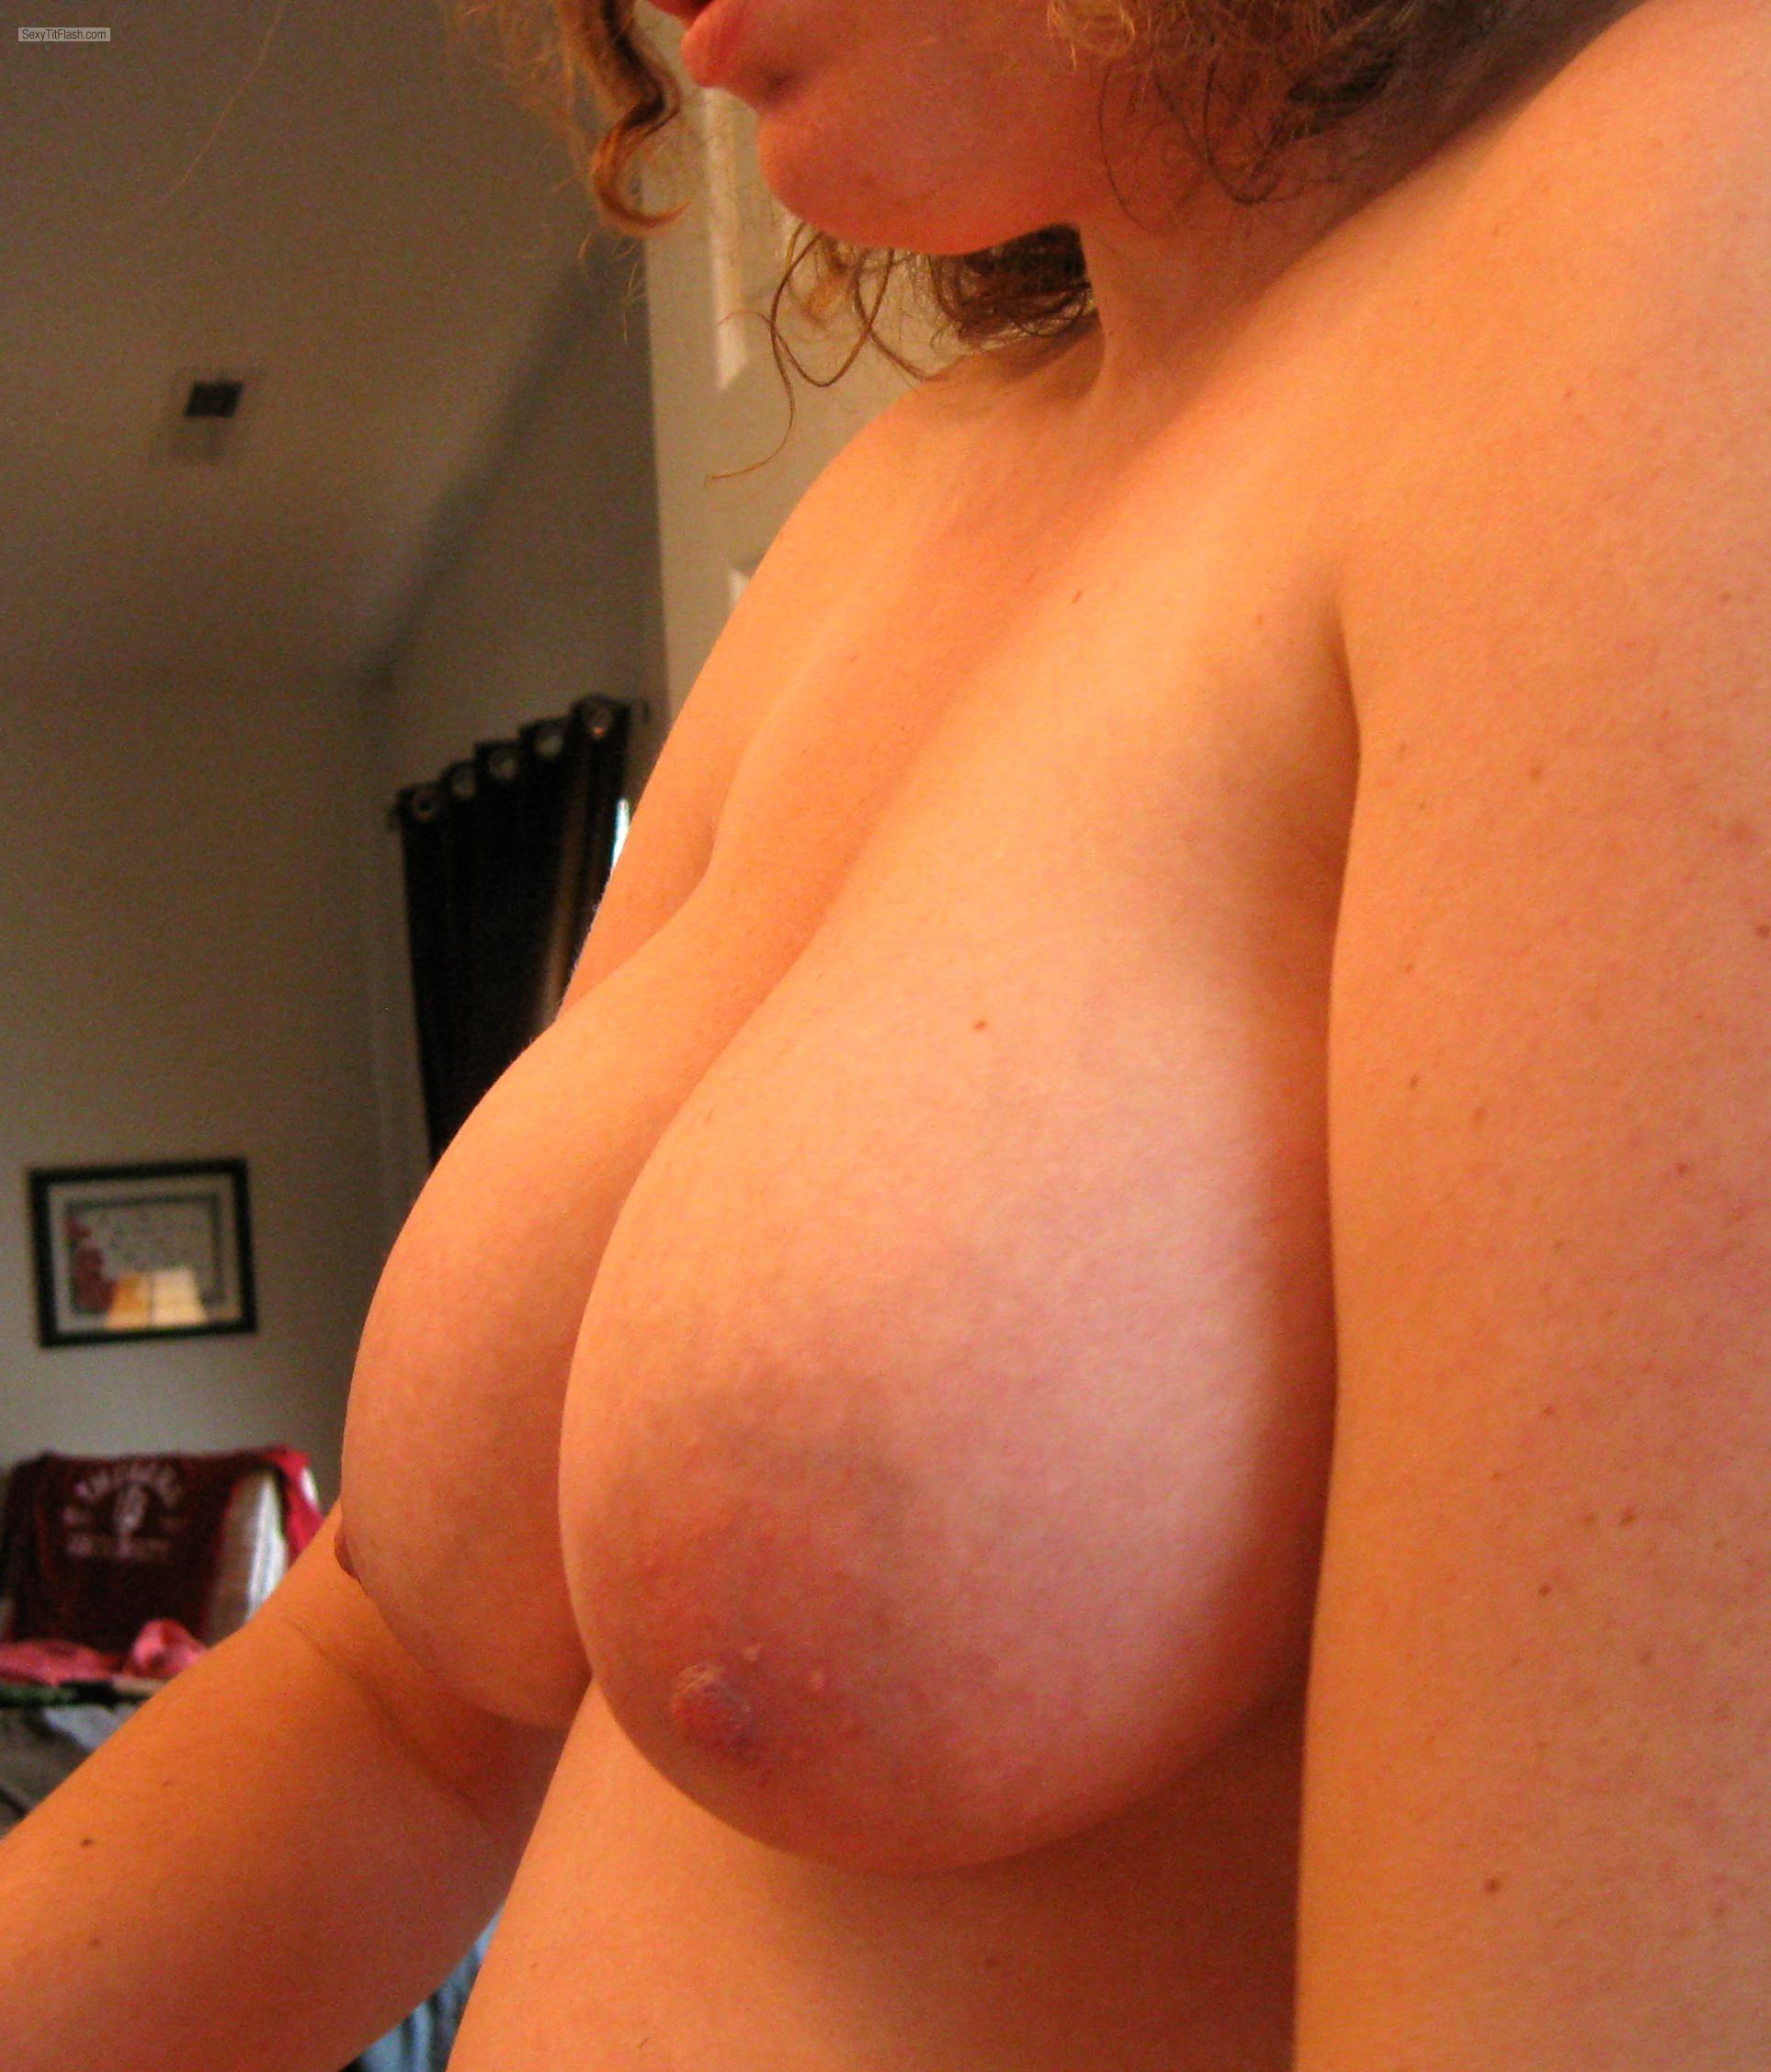 Big Tits Of My Wife MtnWife